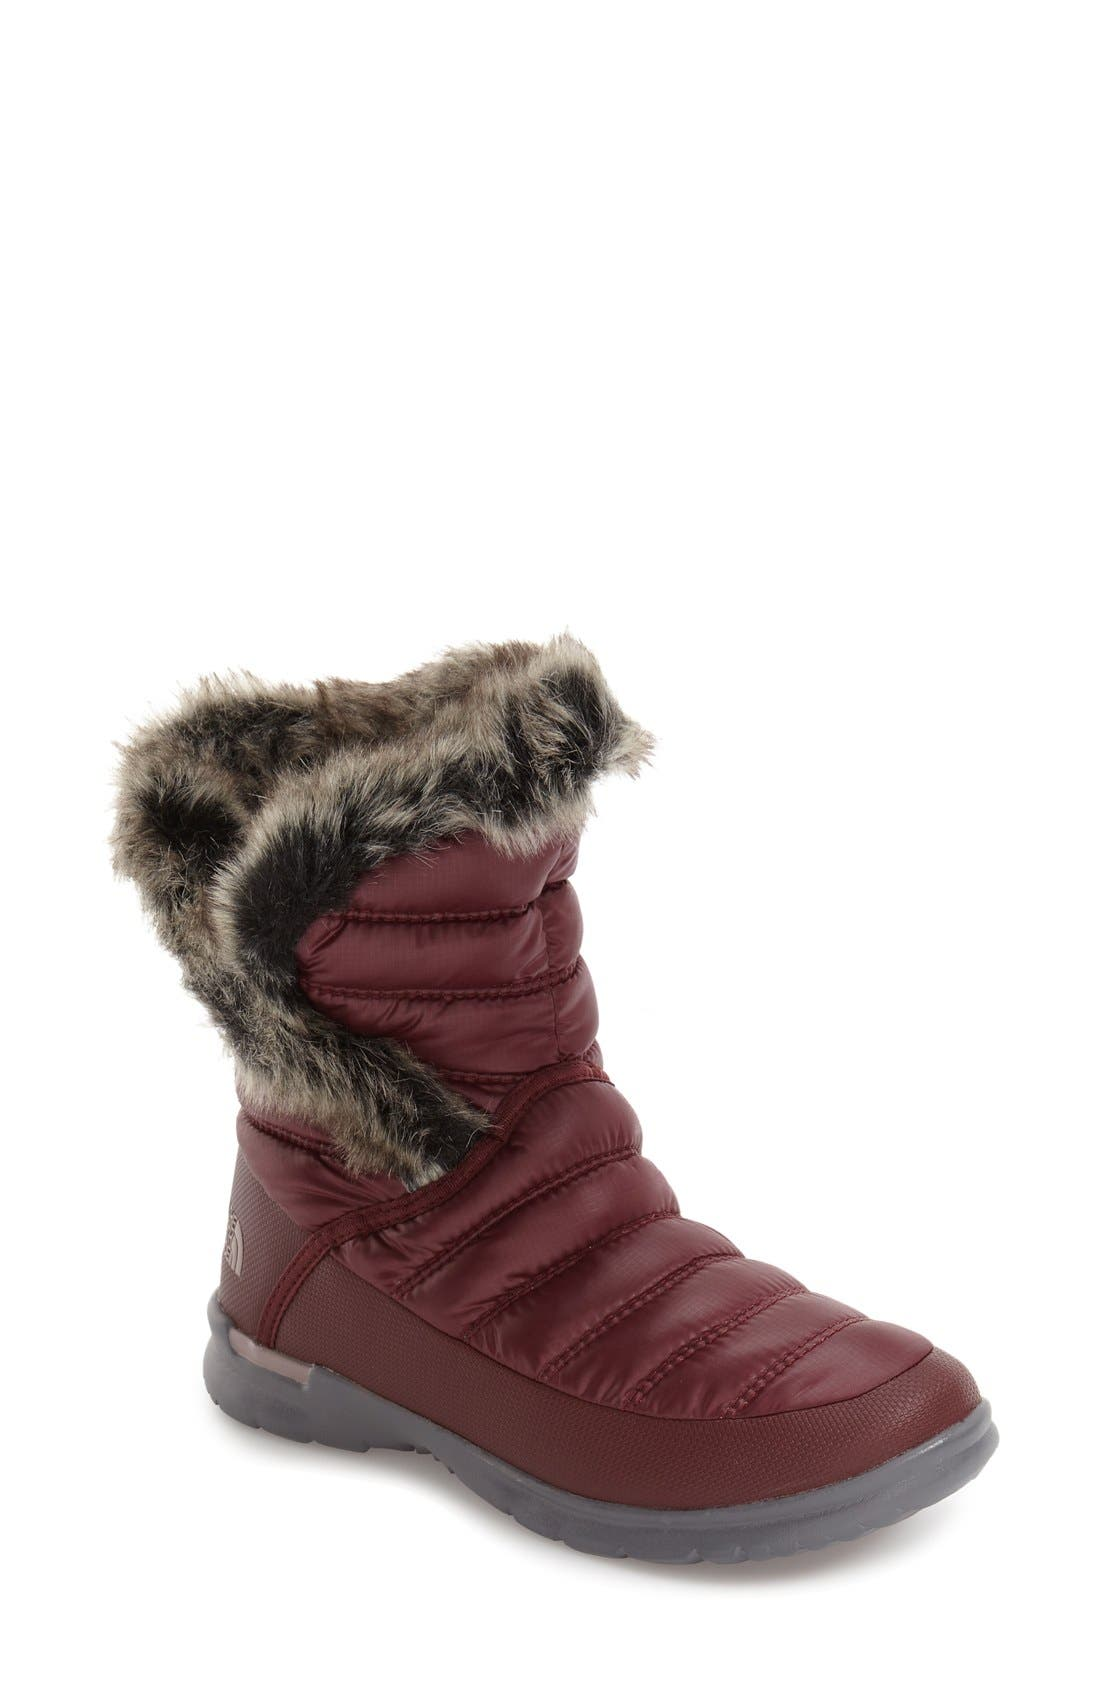 Main Image - The North Face Microbaffle Waterproof ThermoBall® Insulated Winter Boot (Women)